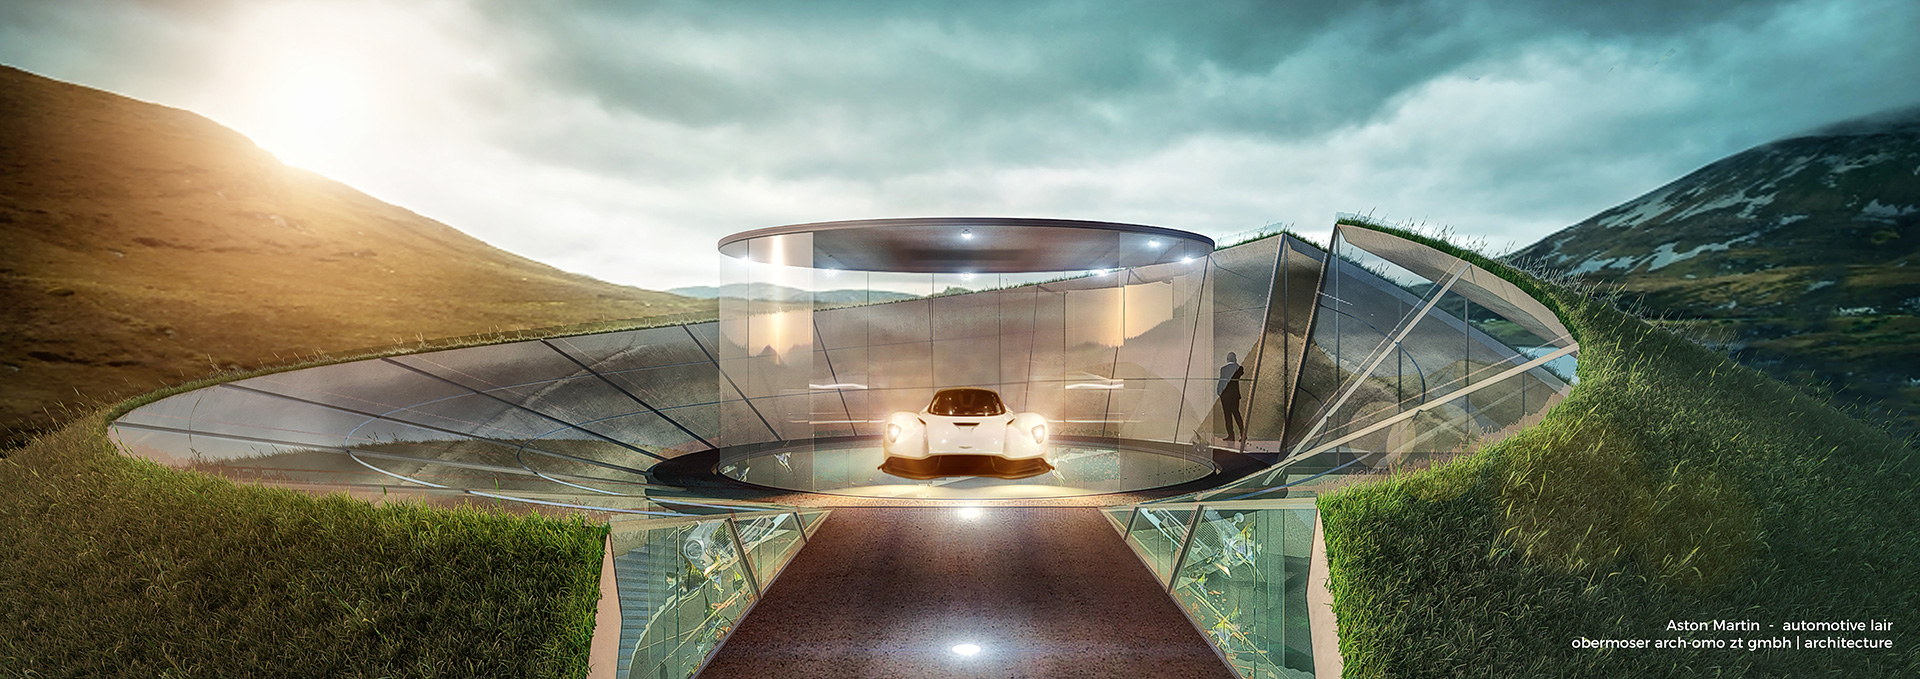 A visualisation of the lairs emerging from the ground | Aston Martin Automotive Galleries and Lairs| STIRworld